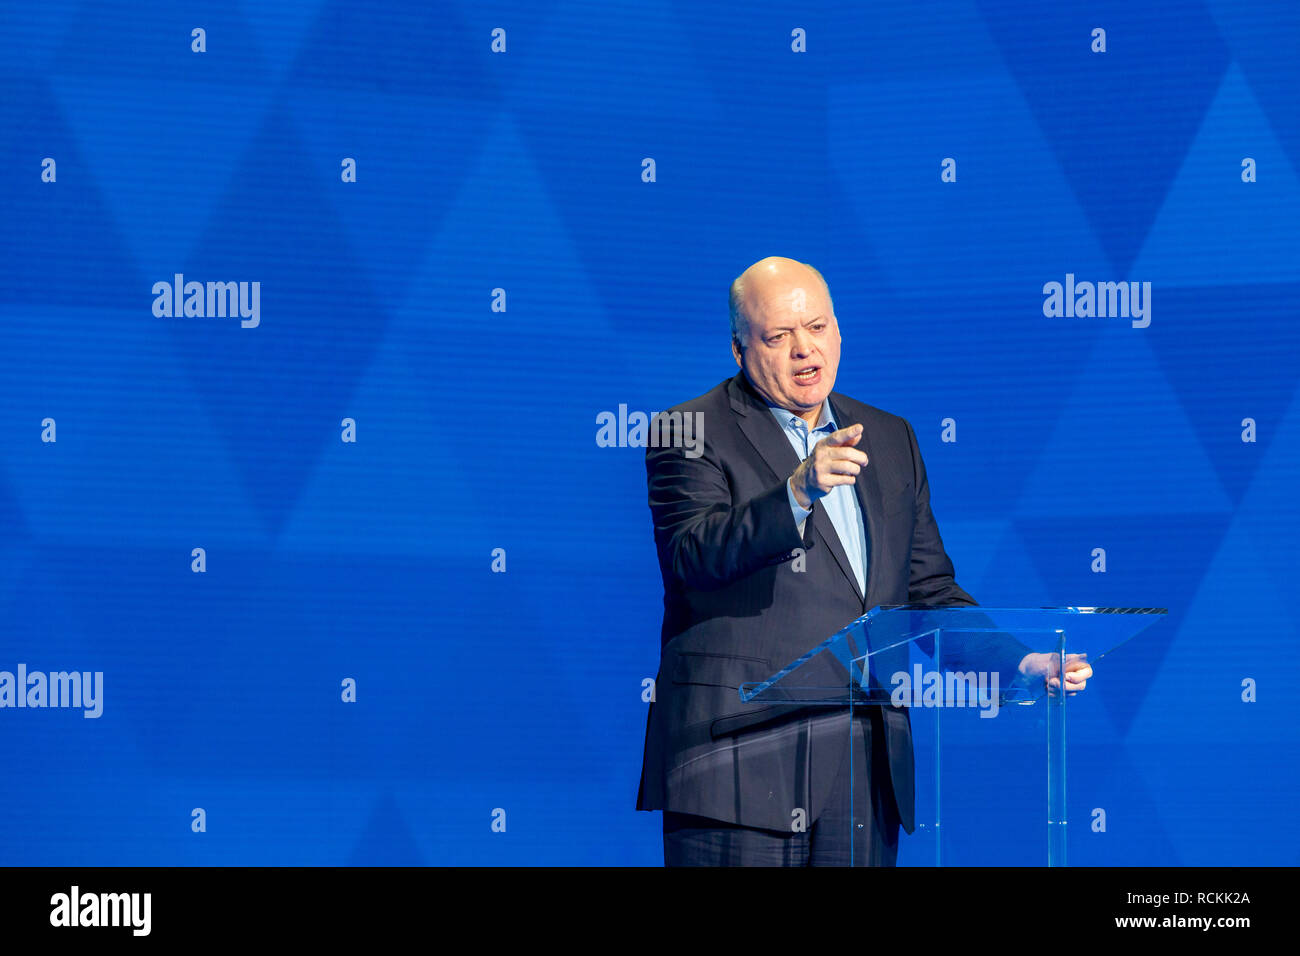 Detroit, Michigan - Jim Hackett, president and CEO of Ford Motor Co., speaks as Ford introduces new vehicles at the North American International Auto  - Stock Image